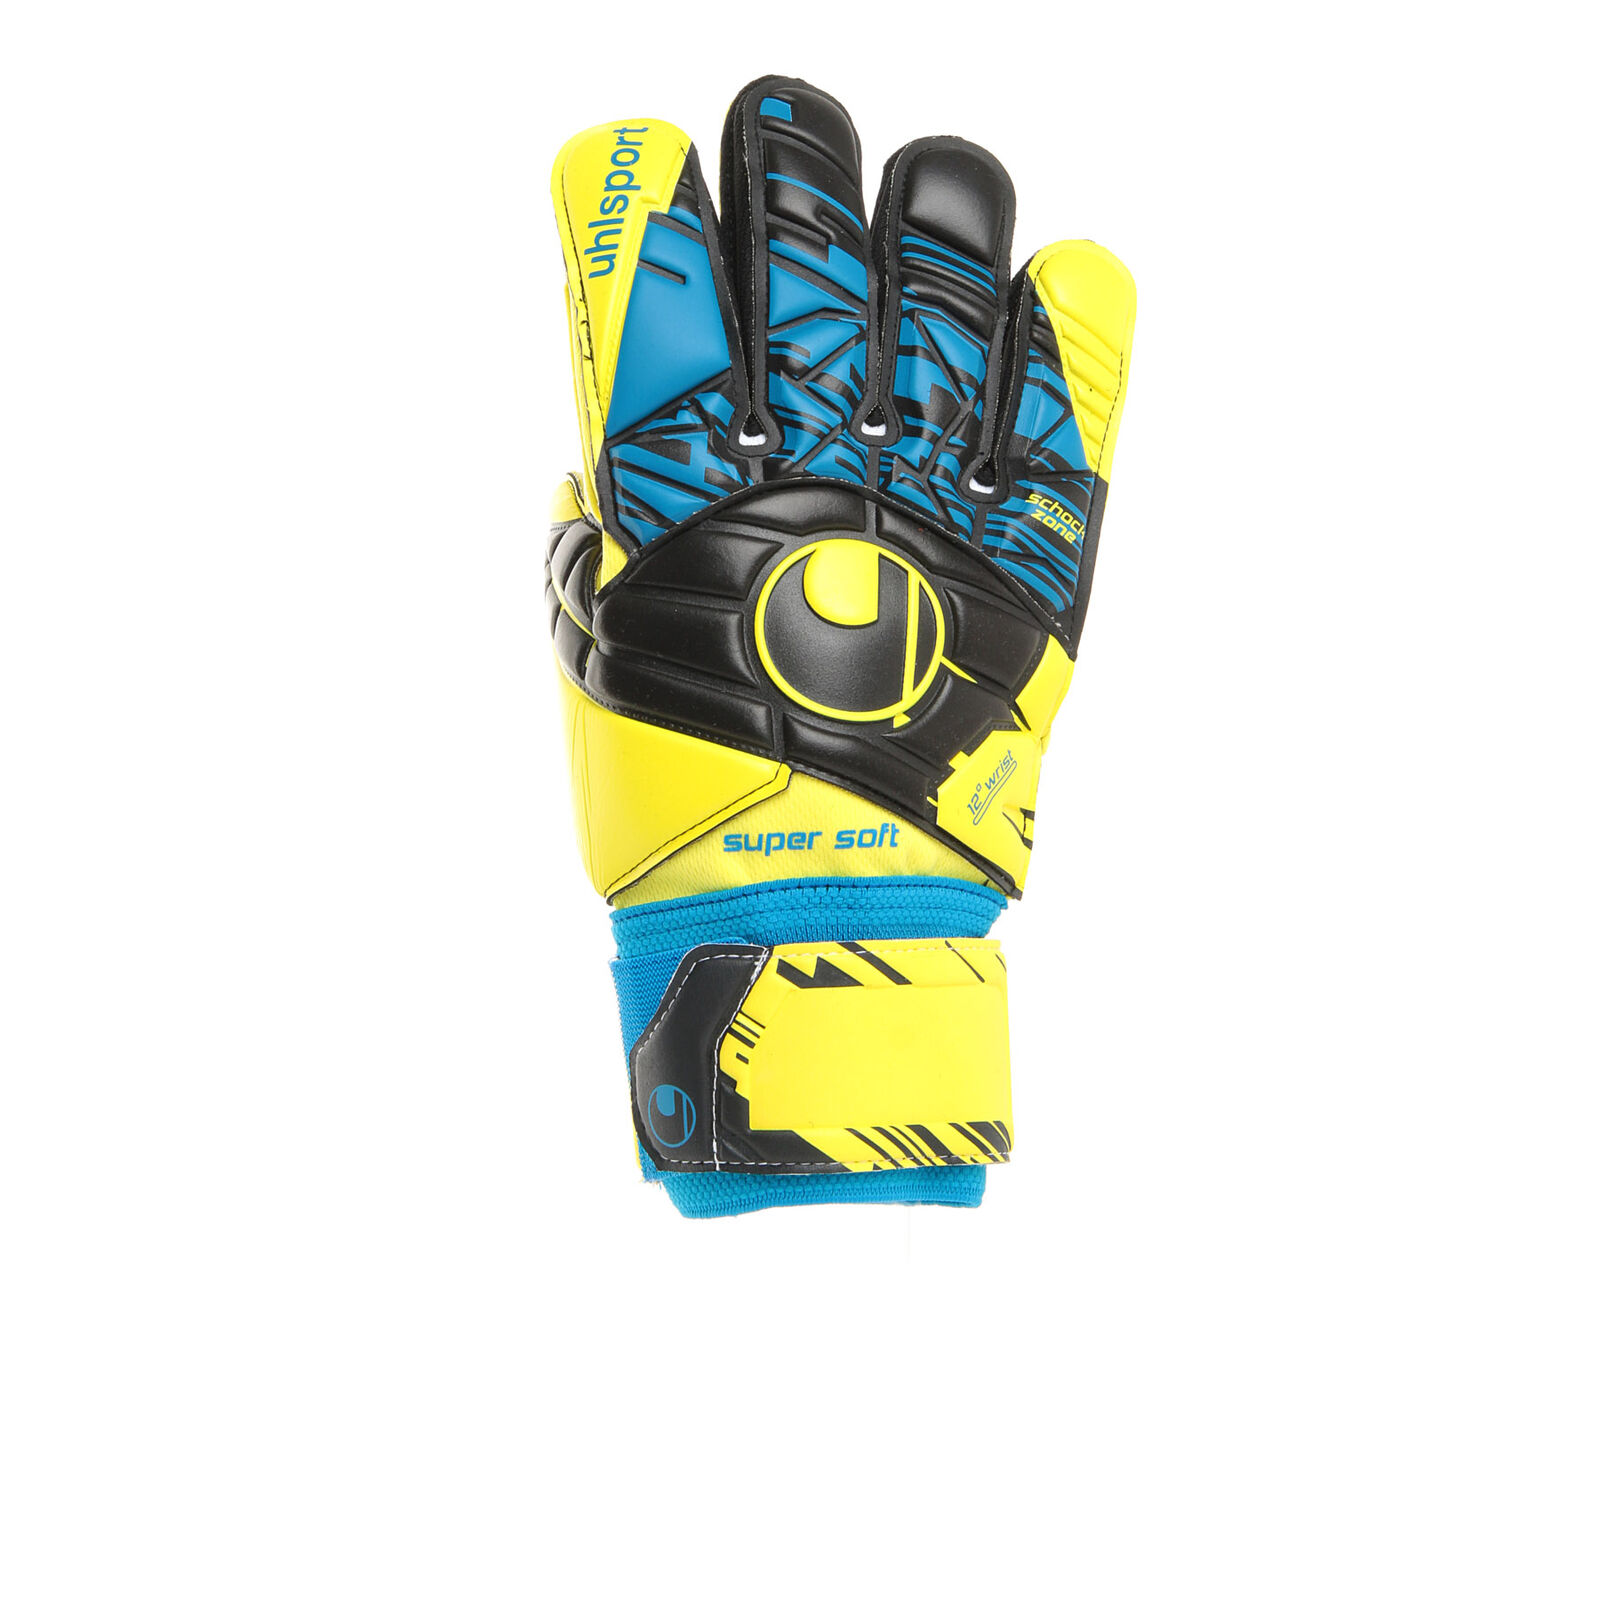 UHLSPORT ELM SPEED UP SUPERSOFT GUANTI PORTIERE CALCIO 1023 1023 1023 08 db82d6